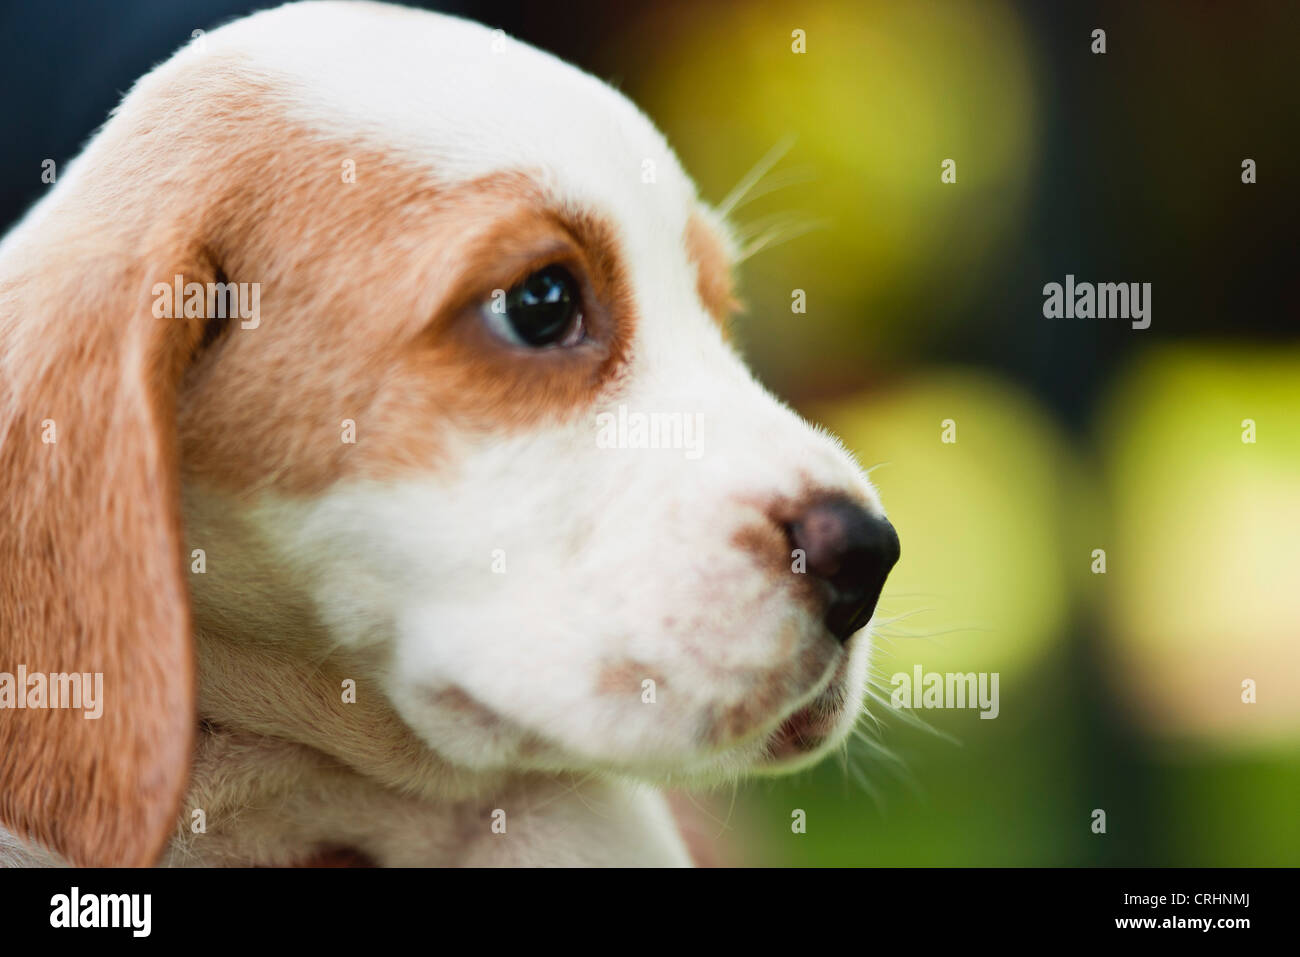 Beagle puppy, side view - Stock Image